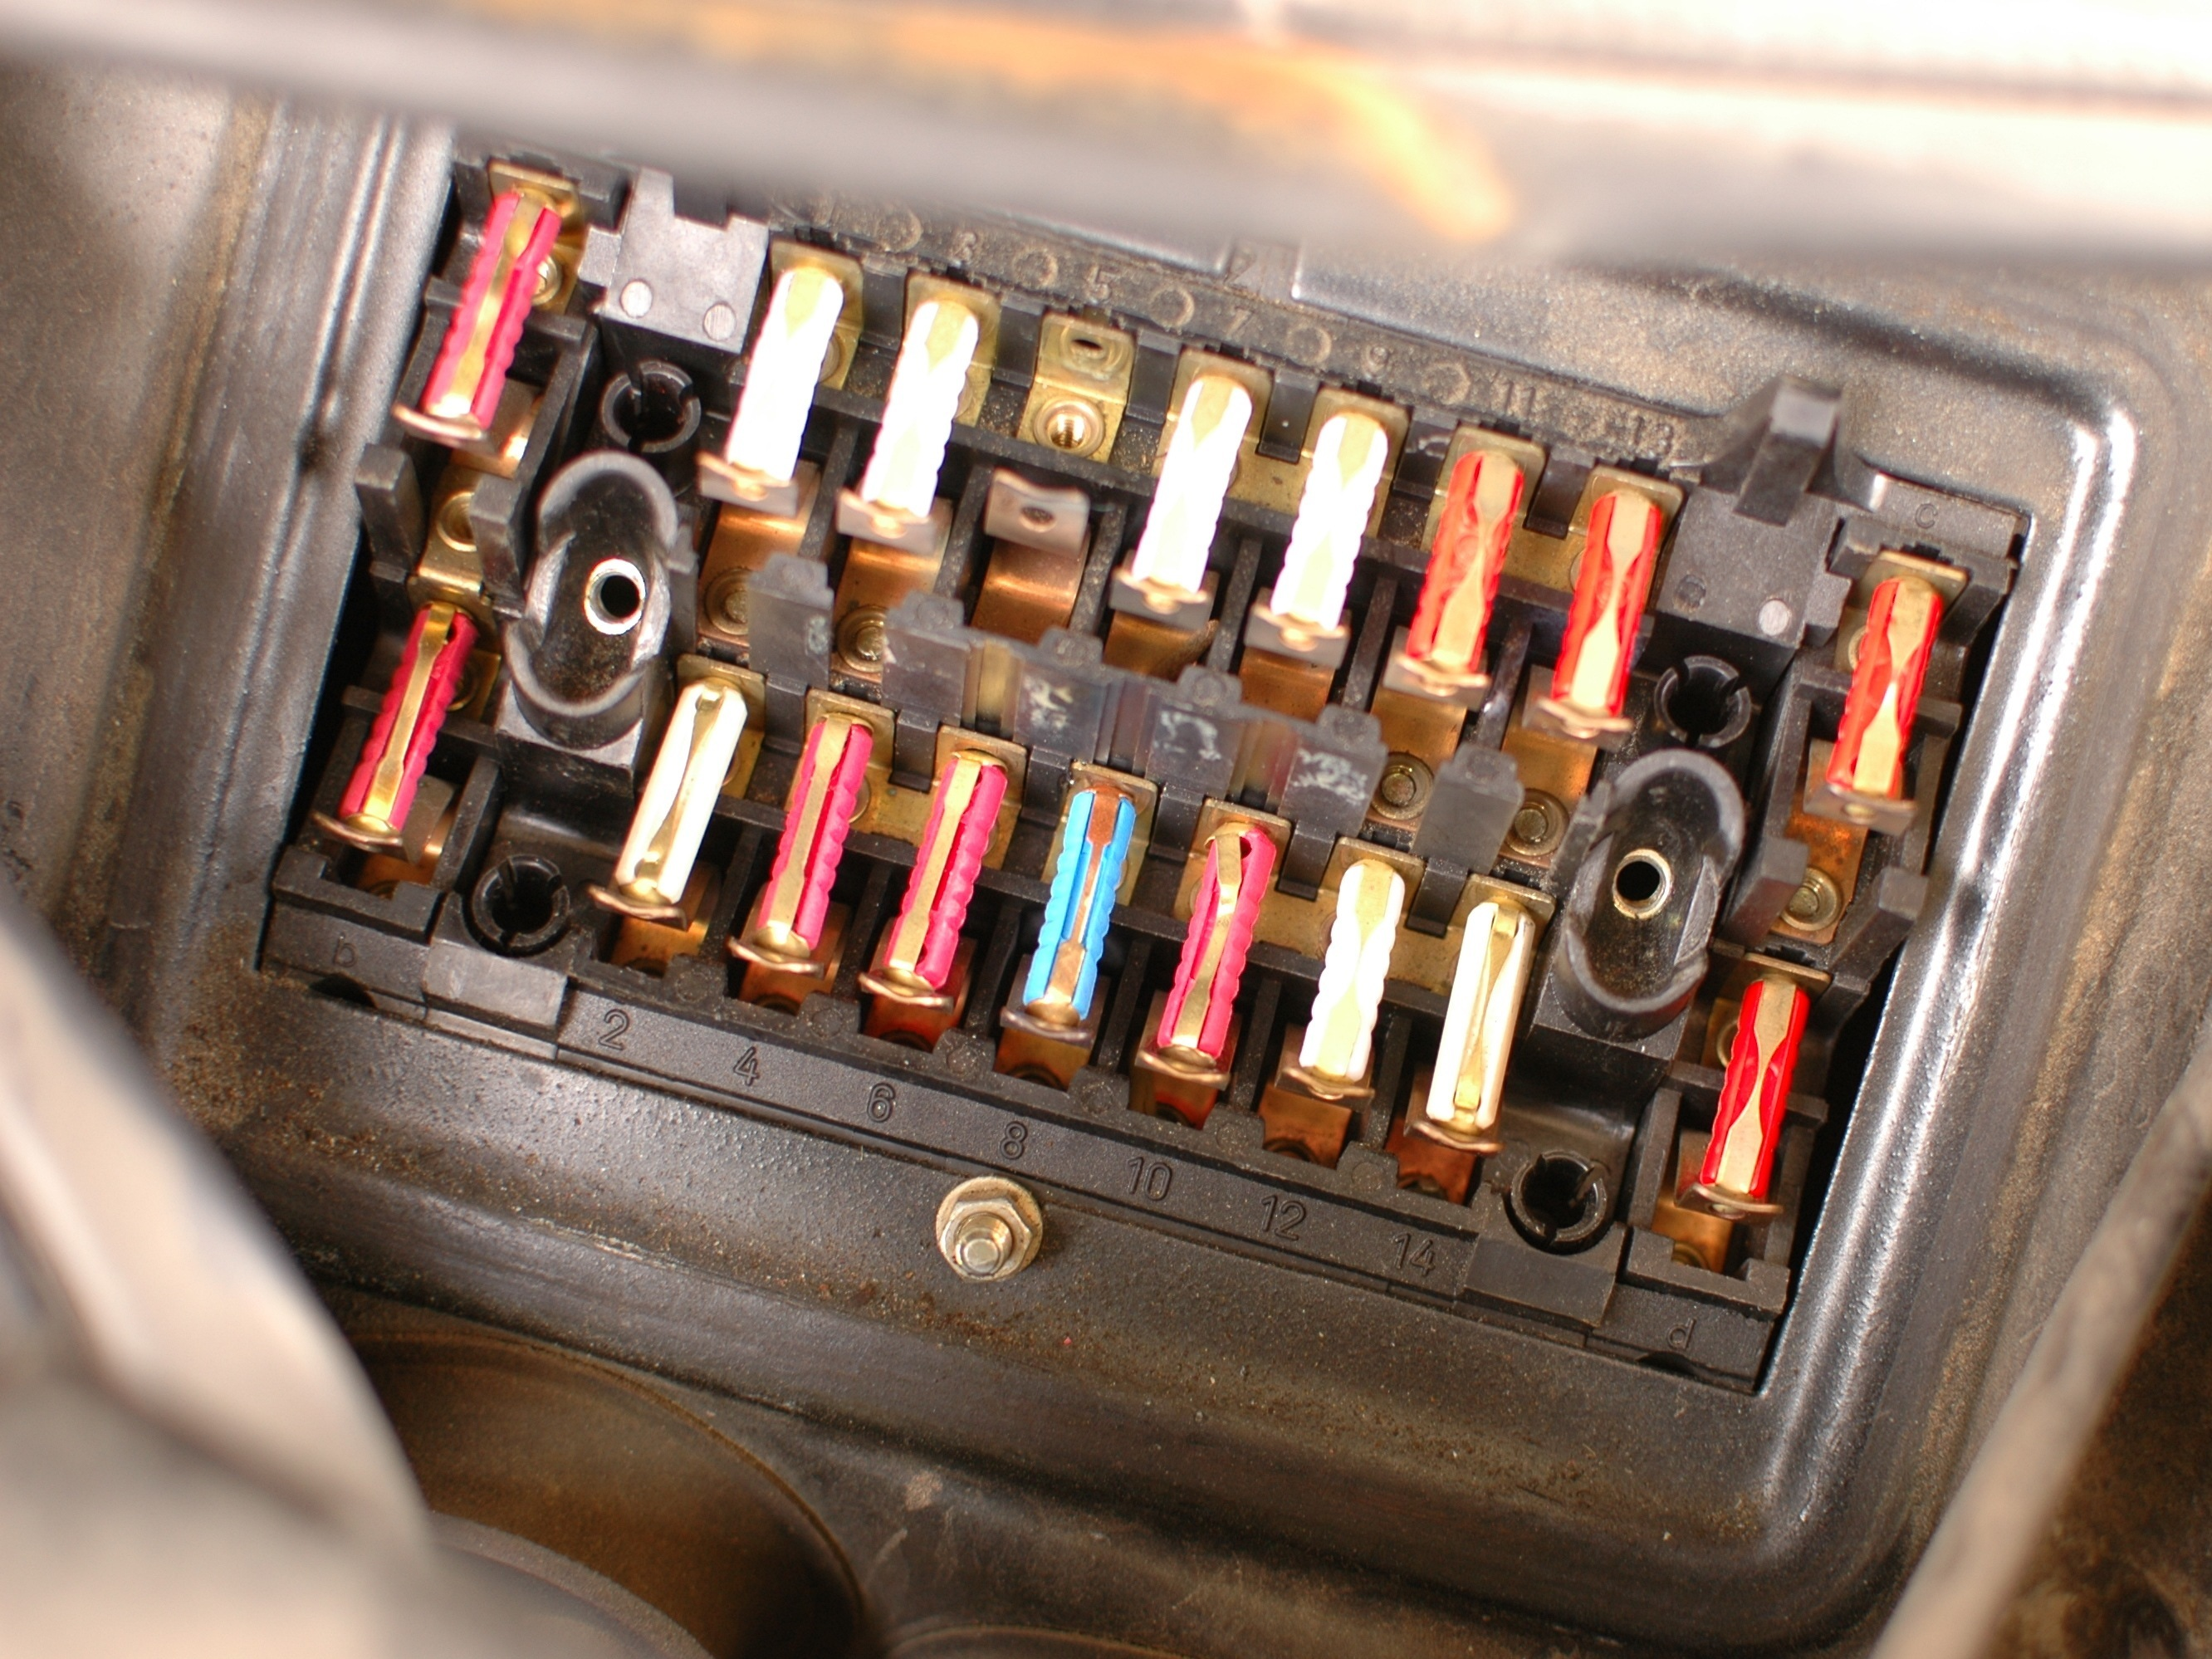 AfYAfmoCaMTVU2ap how to check mercedes w123 fuses ifixit 1978 Mercedes 450SEL at bakdesigns.co